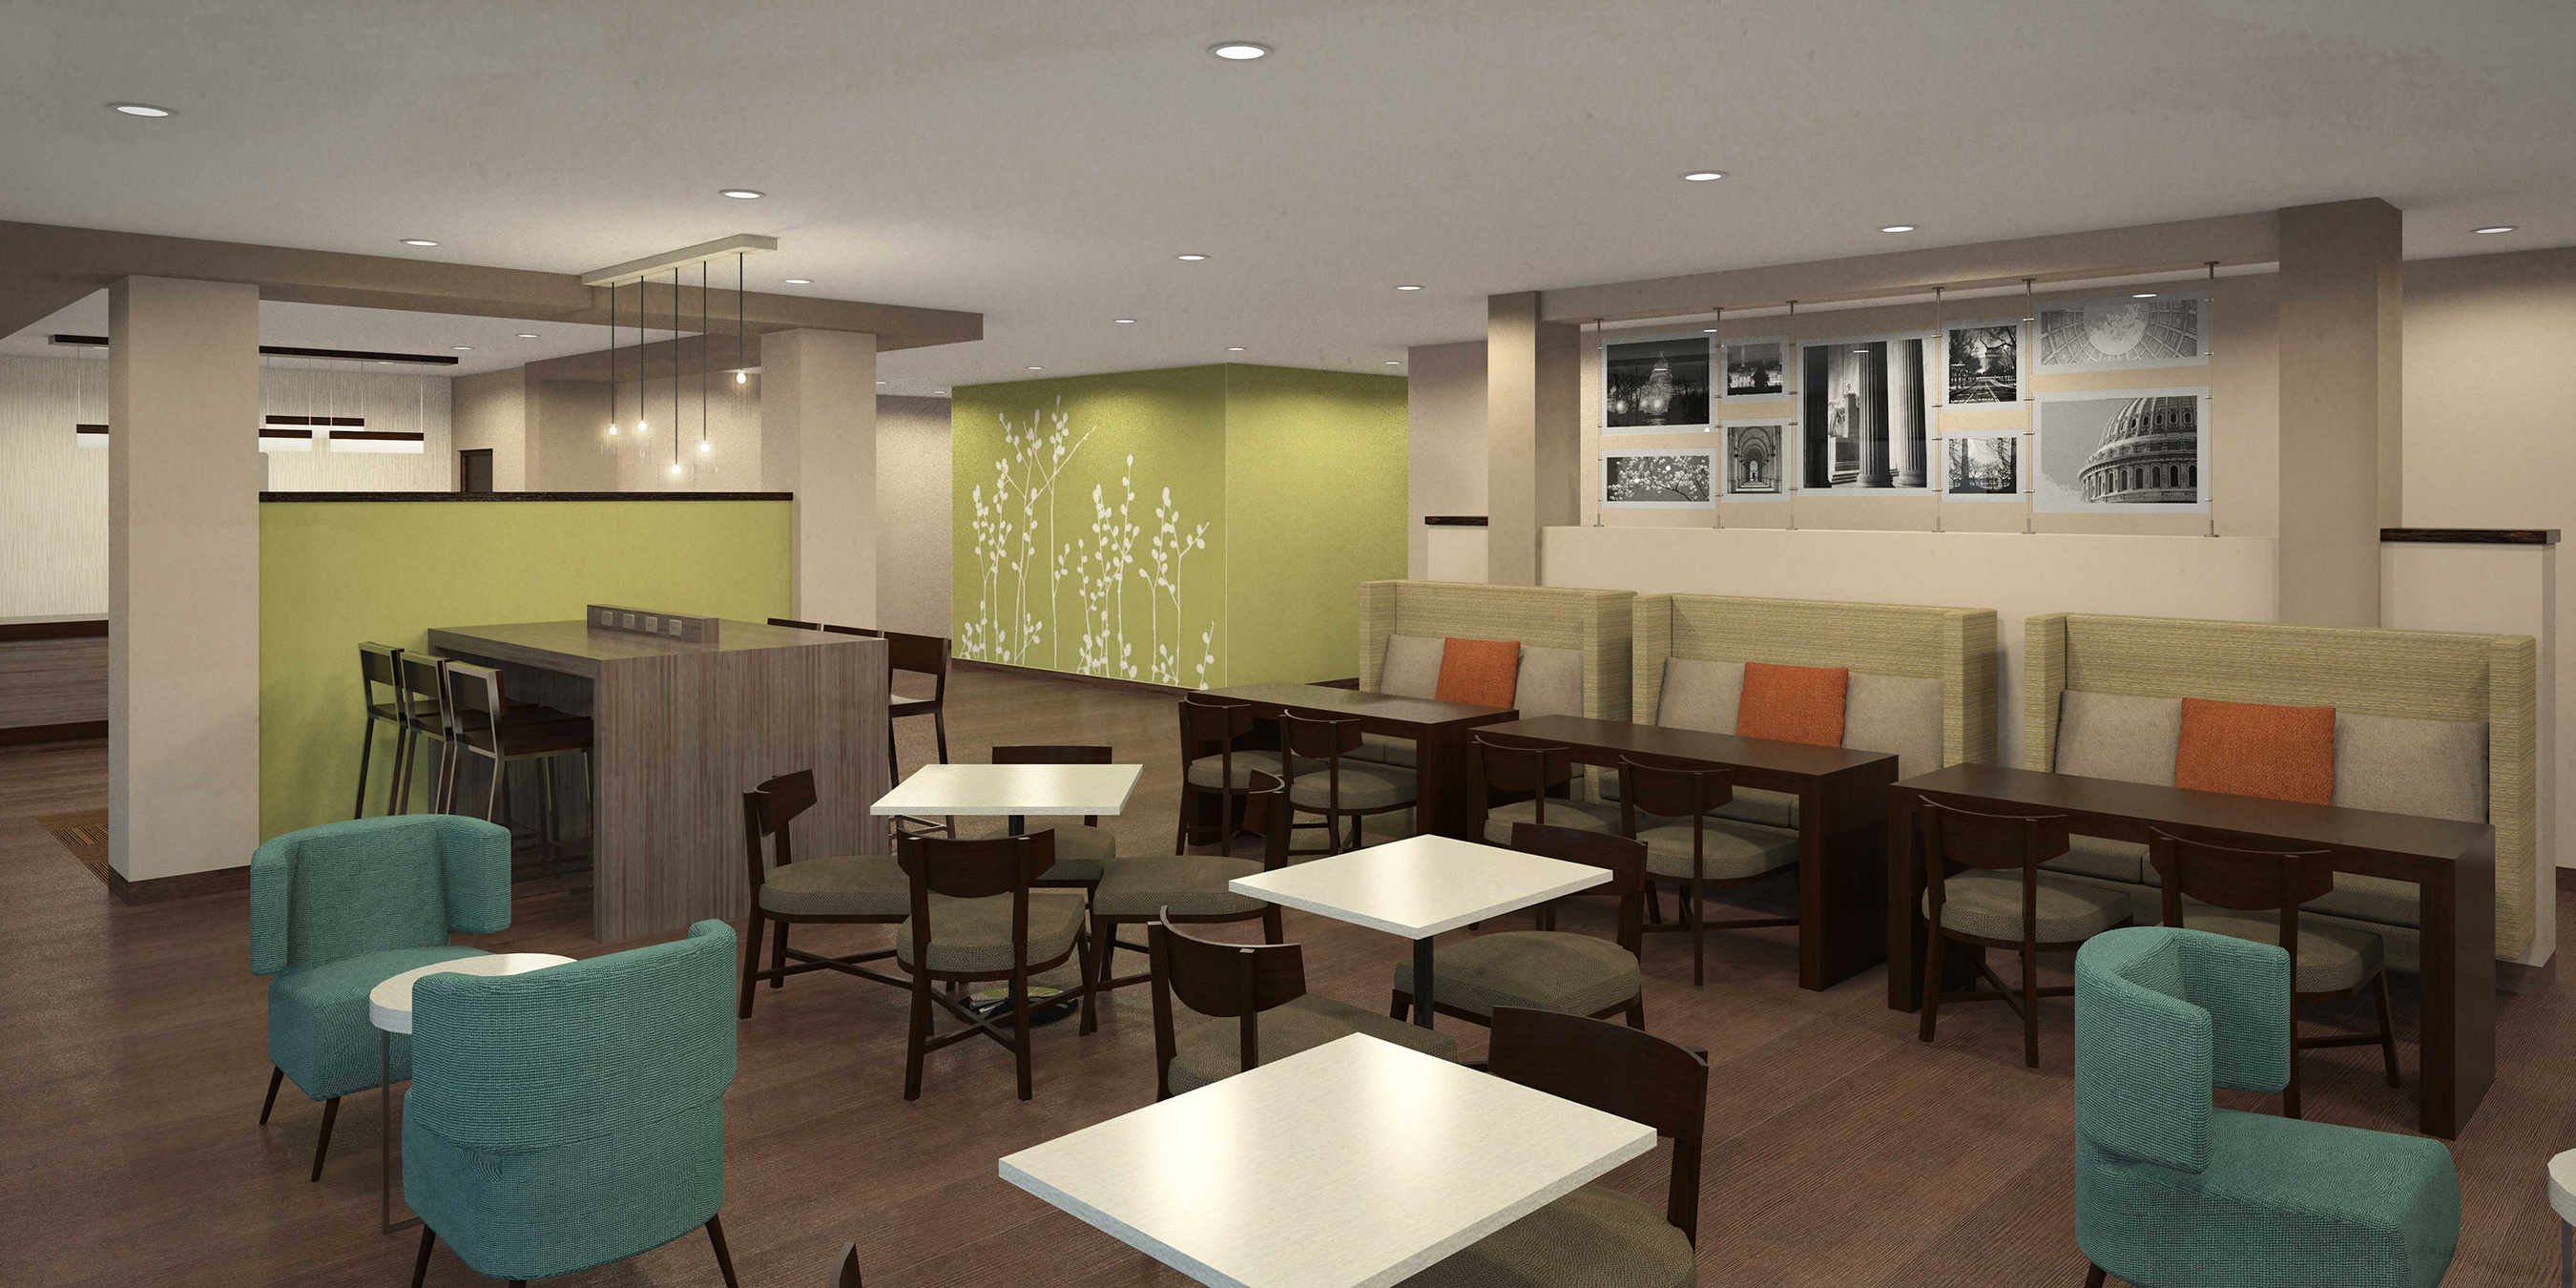 Stylish open public areas have versatile seating and communal tables with built-in charging capabilities, as well as semi-private banquettes.